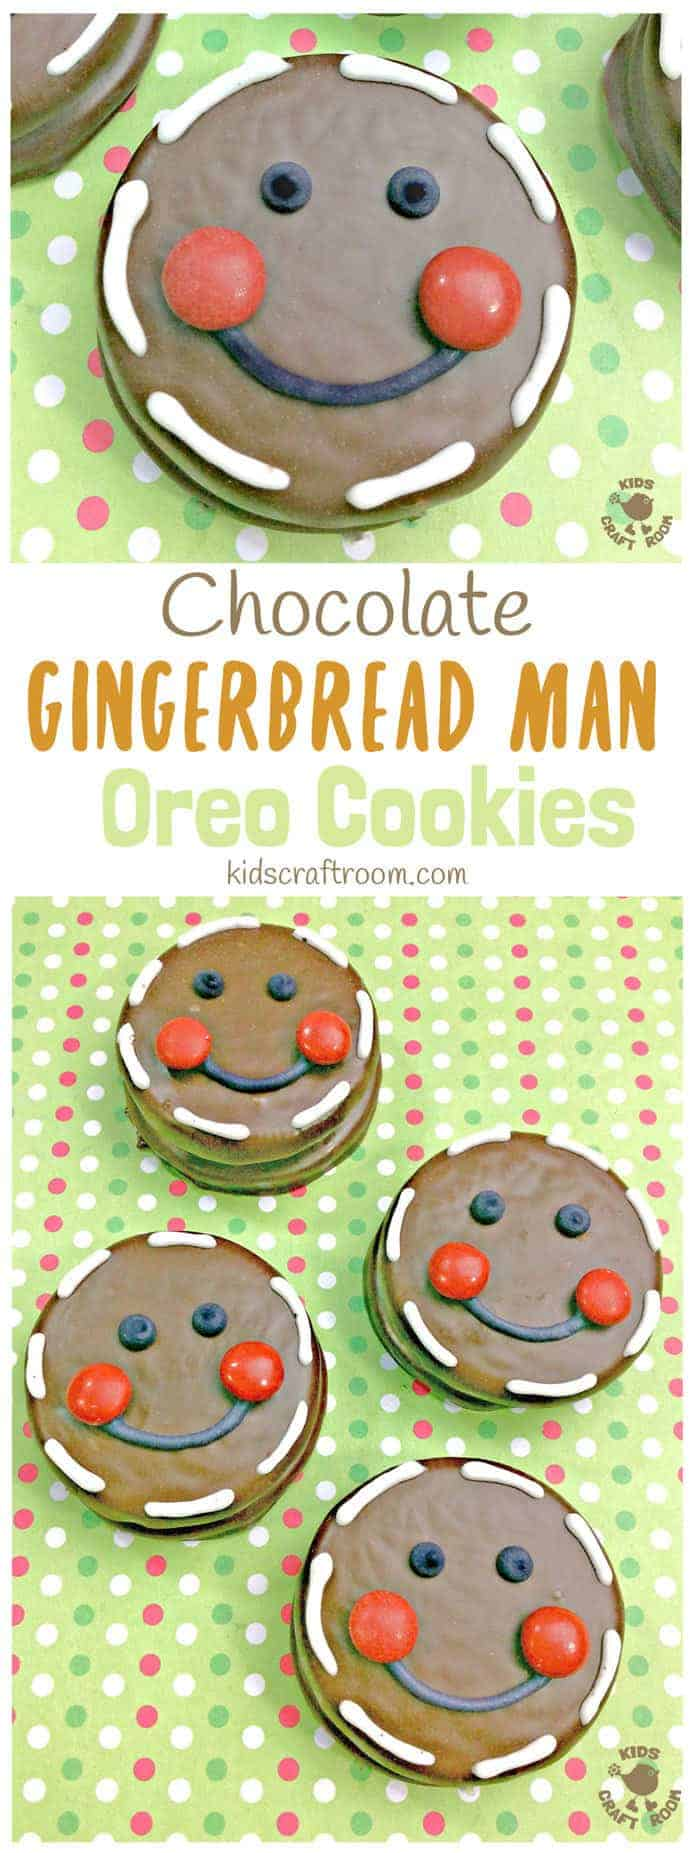 CHOCOLATE GINGERBREAD MAN OREO COOKIES - Fun Christmas treats for cooking with kids. This is an easy Christmas recipe with an Oreo base the whole family will enjoy. #christmas #christmasrecipes #cookingwithkids #kidsrecipes #oreo #gingerbreadman #gingerbread #christmastreats #christmascookies #cookies #kidscraftroom